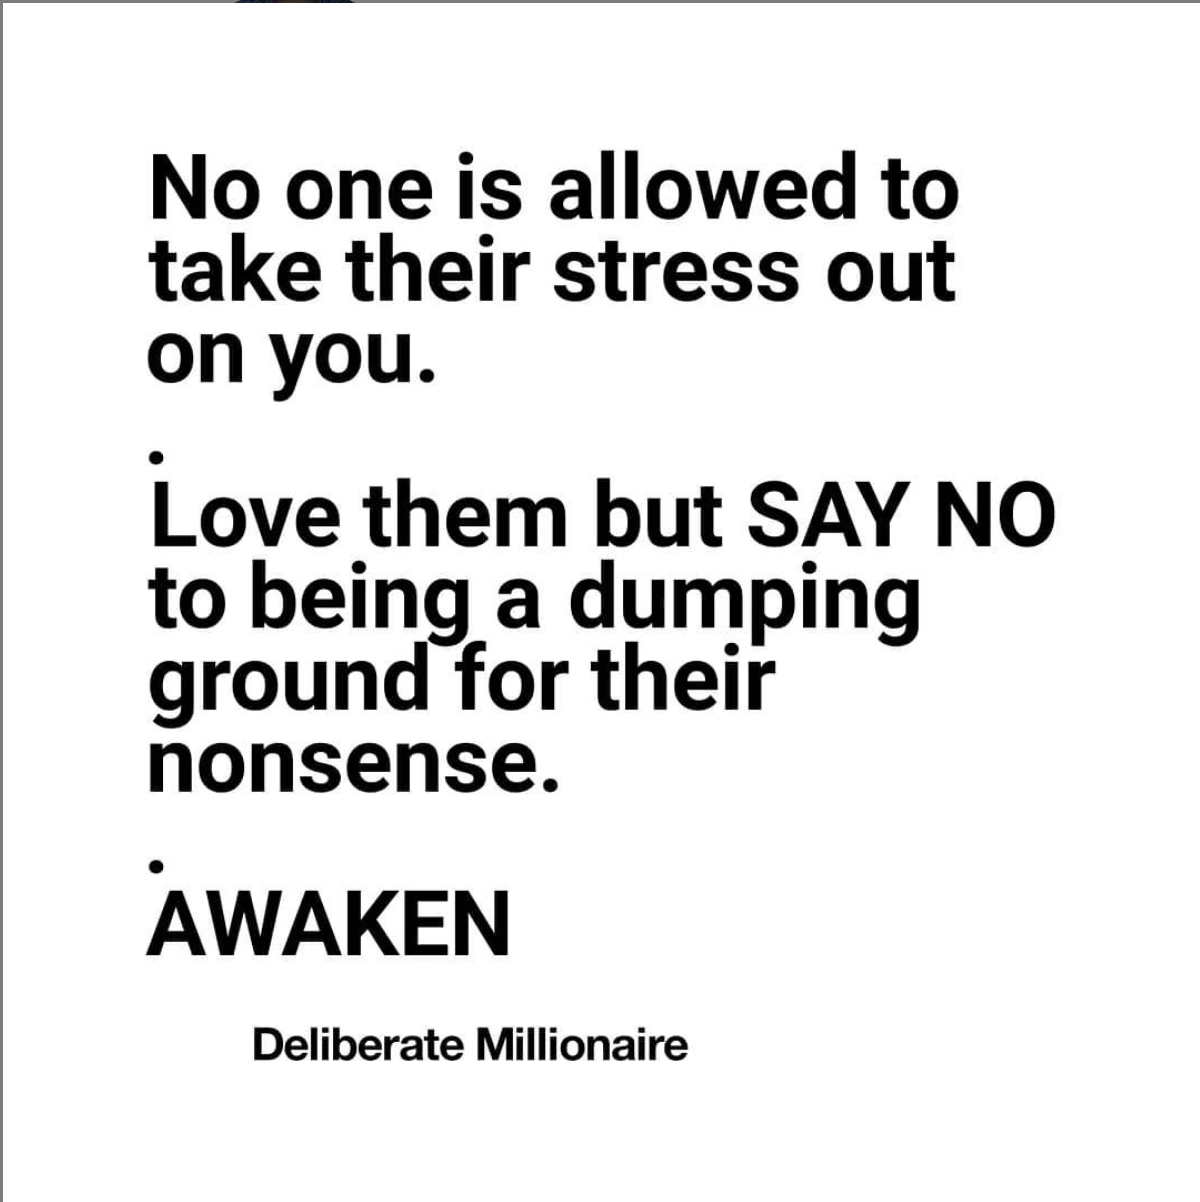 No One Is Allowed To Take Their Stress Out On You!